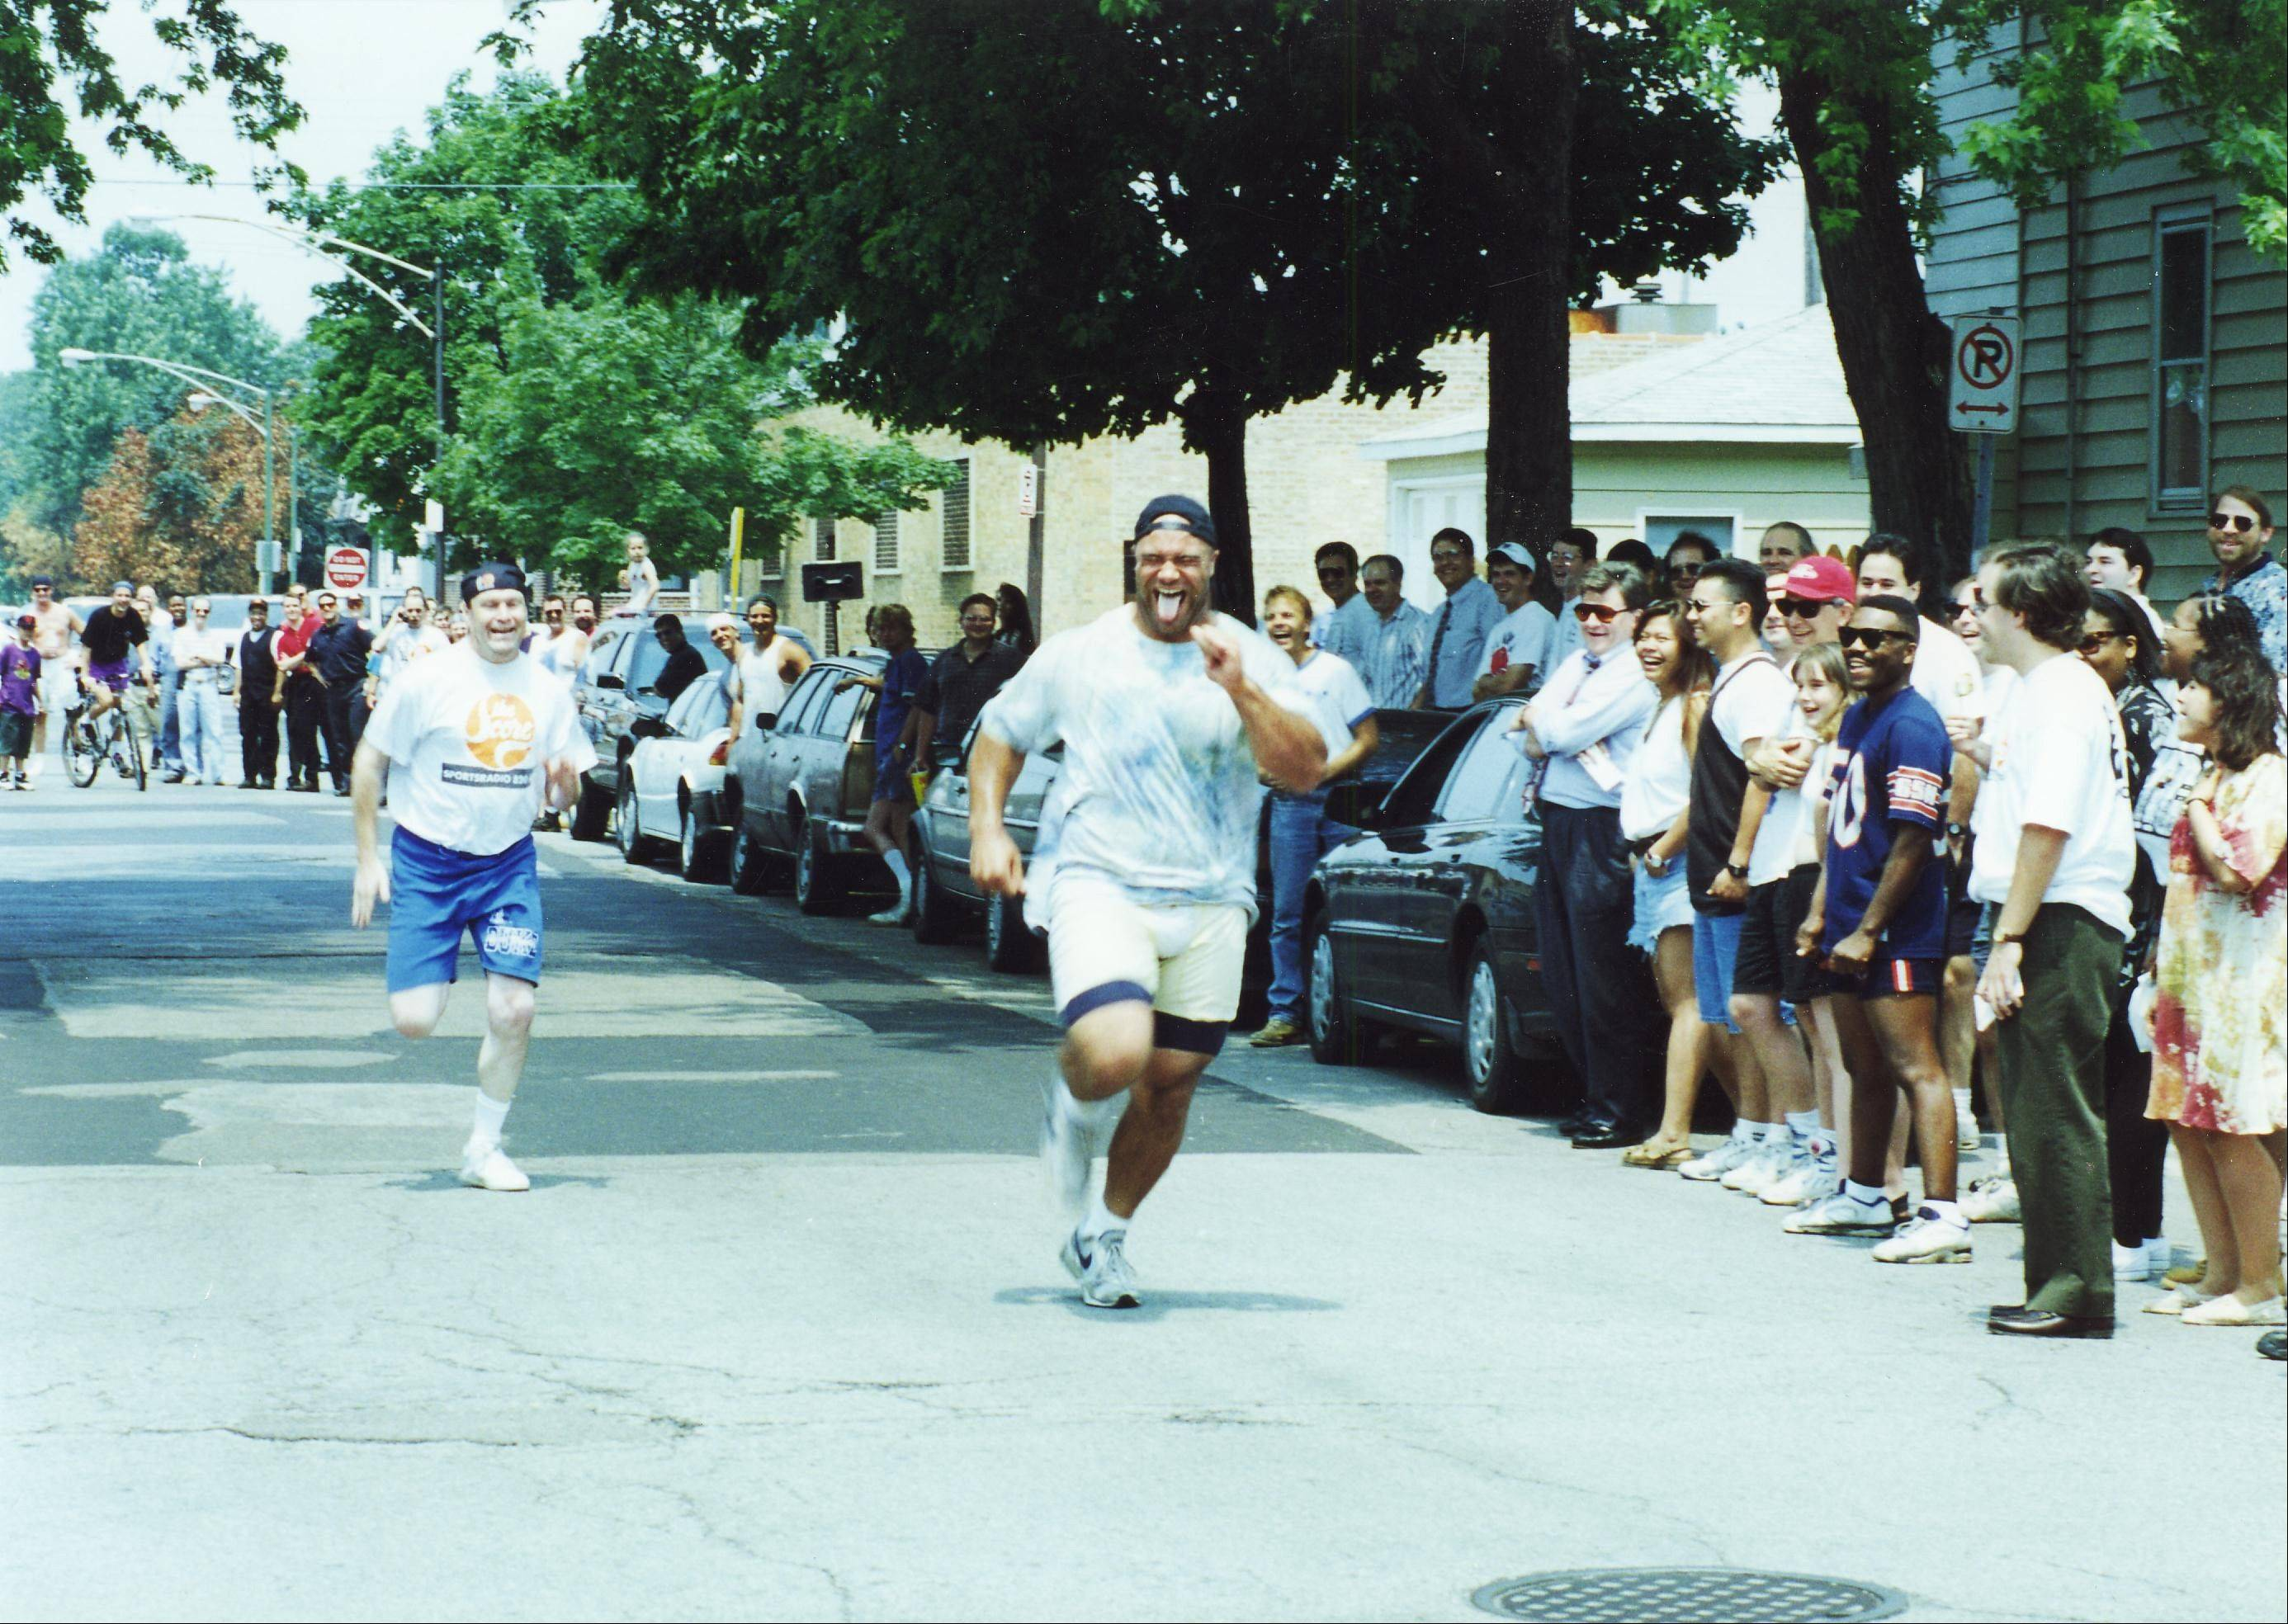 Chris Zorich agreed to Mike North's challenge of a 100-yard race. North said he could beat Zorich, but he proved to be wrong.